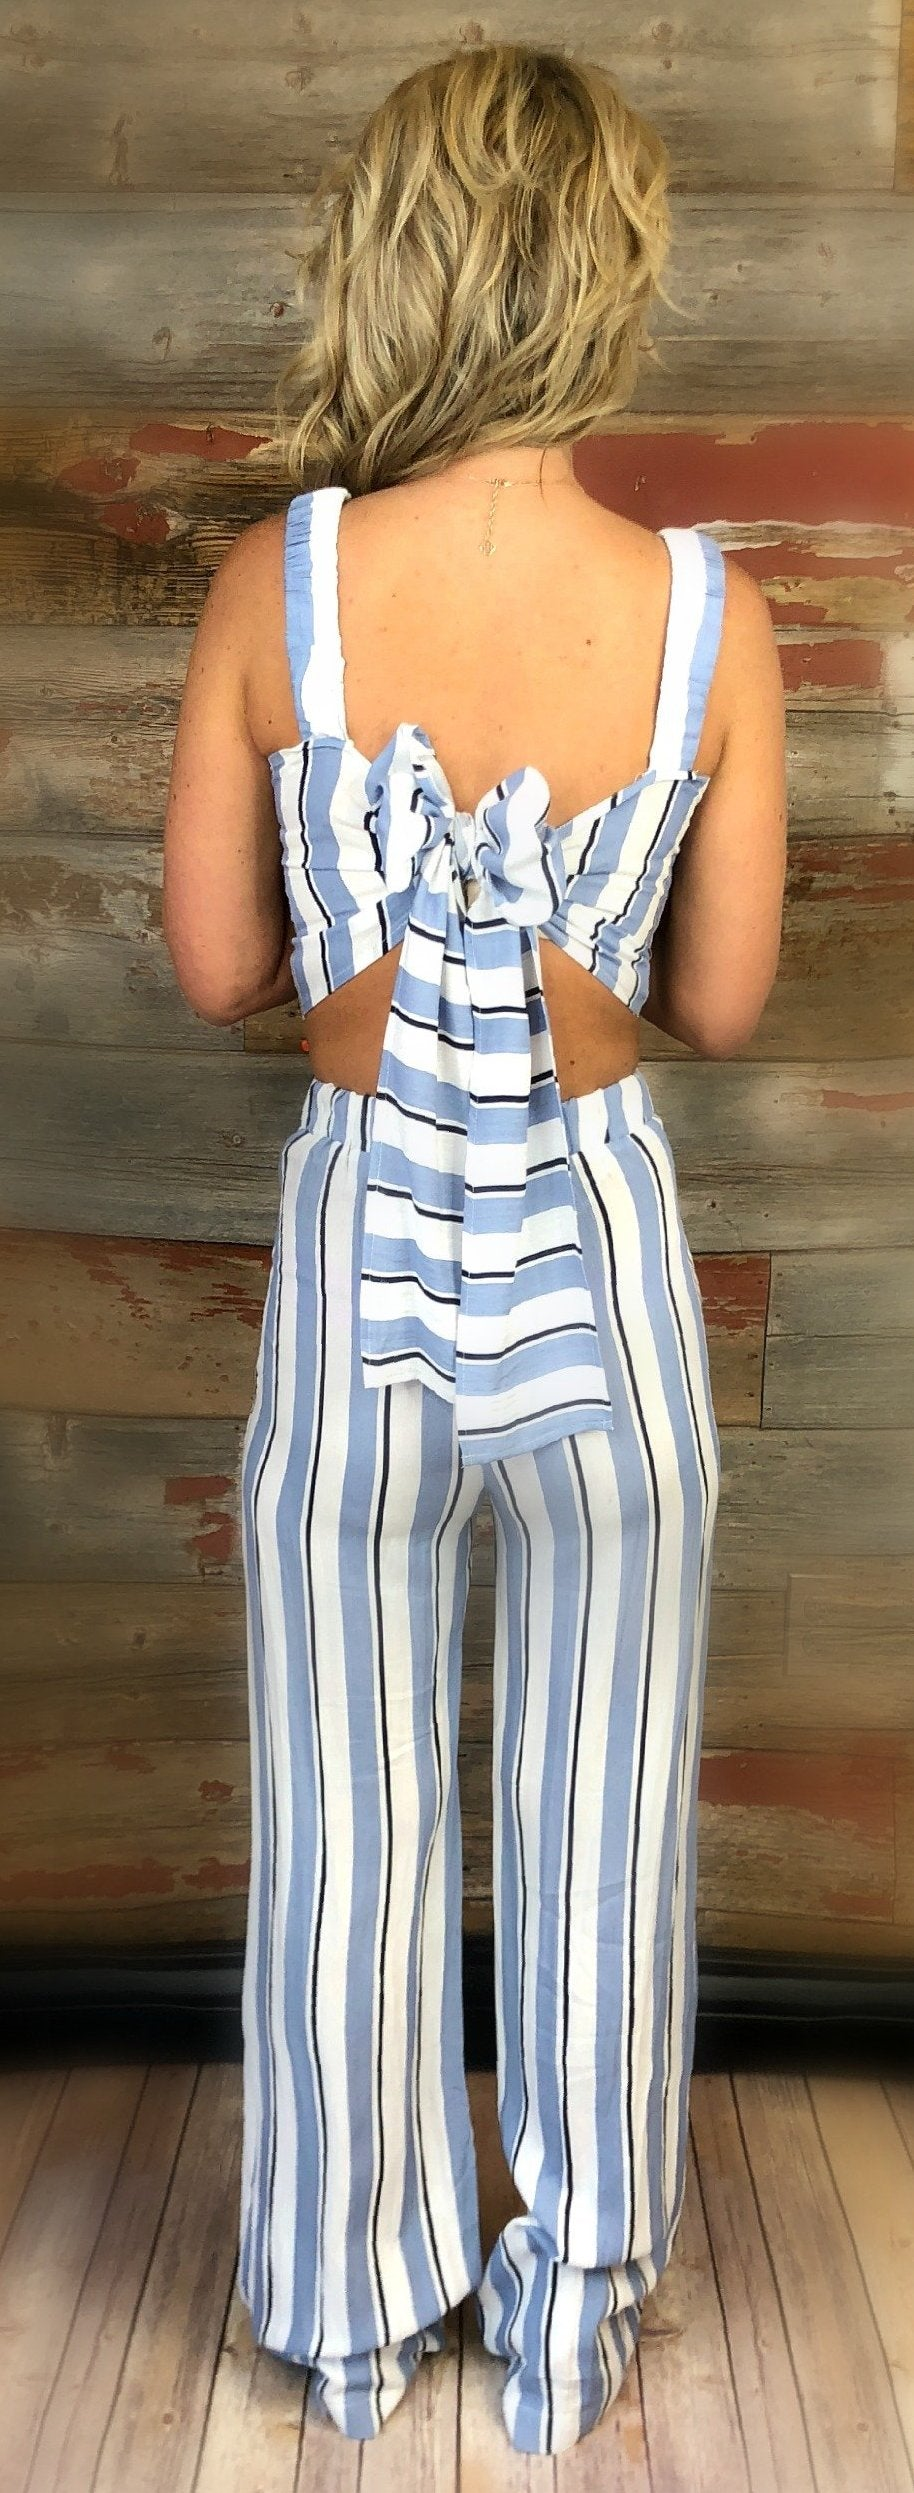 This is for You Striped Two-Piece Set